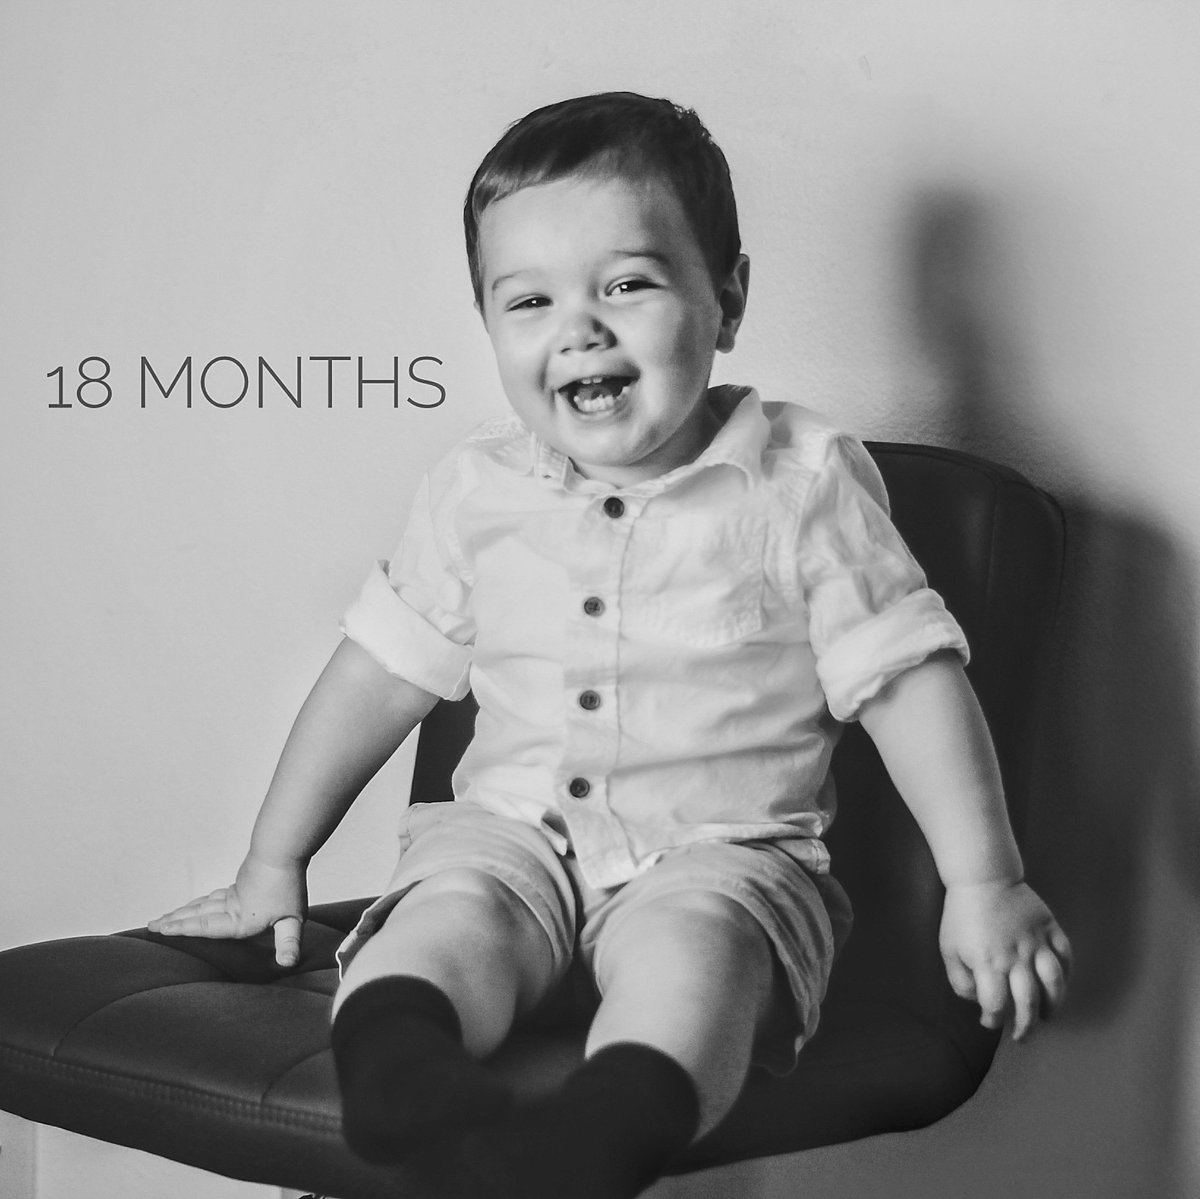 I'm a day late tweeting this but Carter is 18 months old now 😭❤ #18monthsold https://t.co/RN69JV7LYa